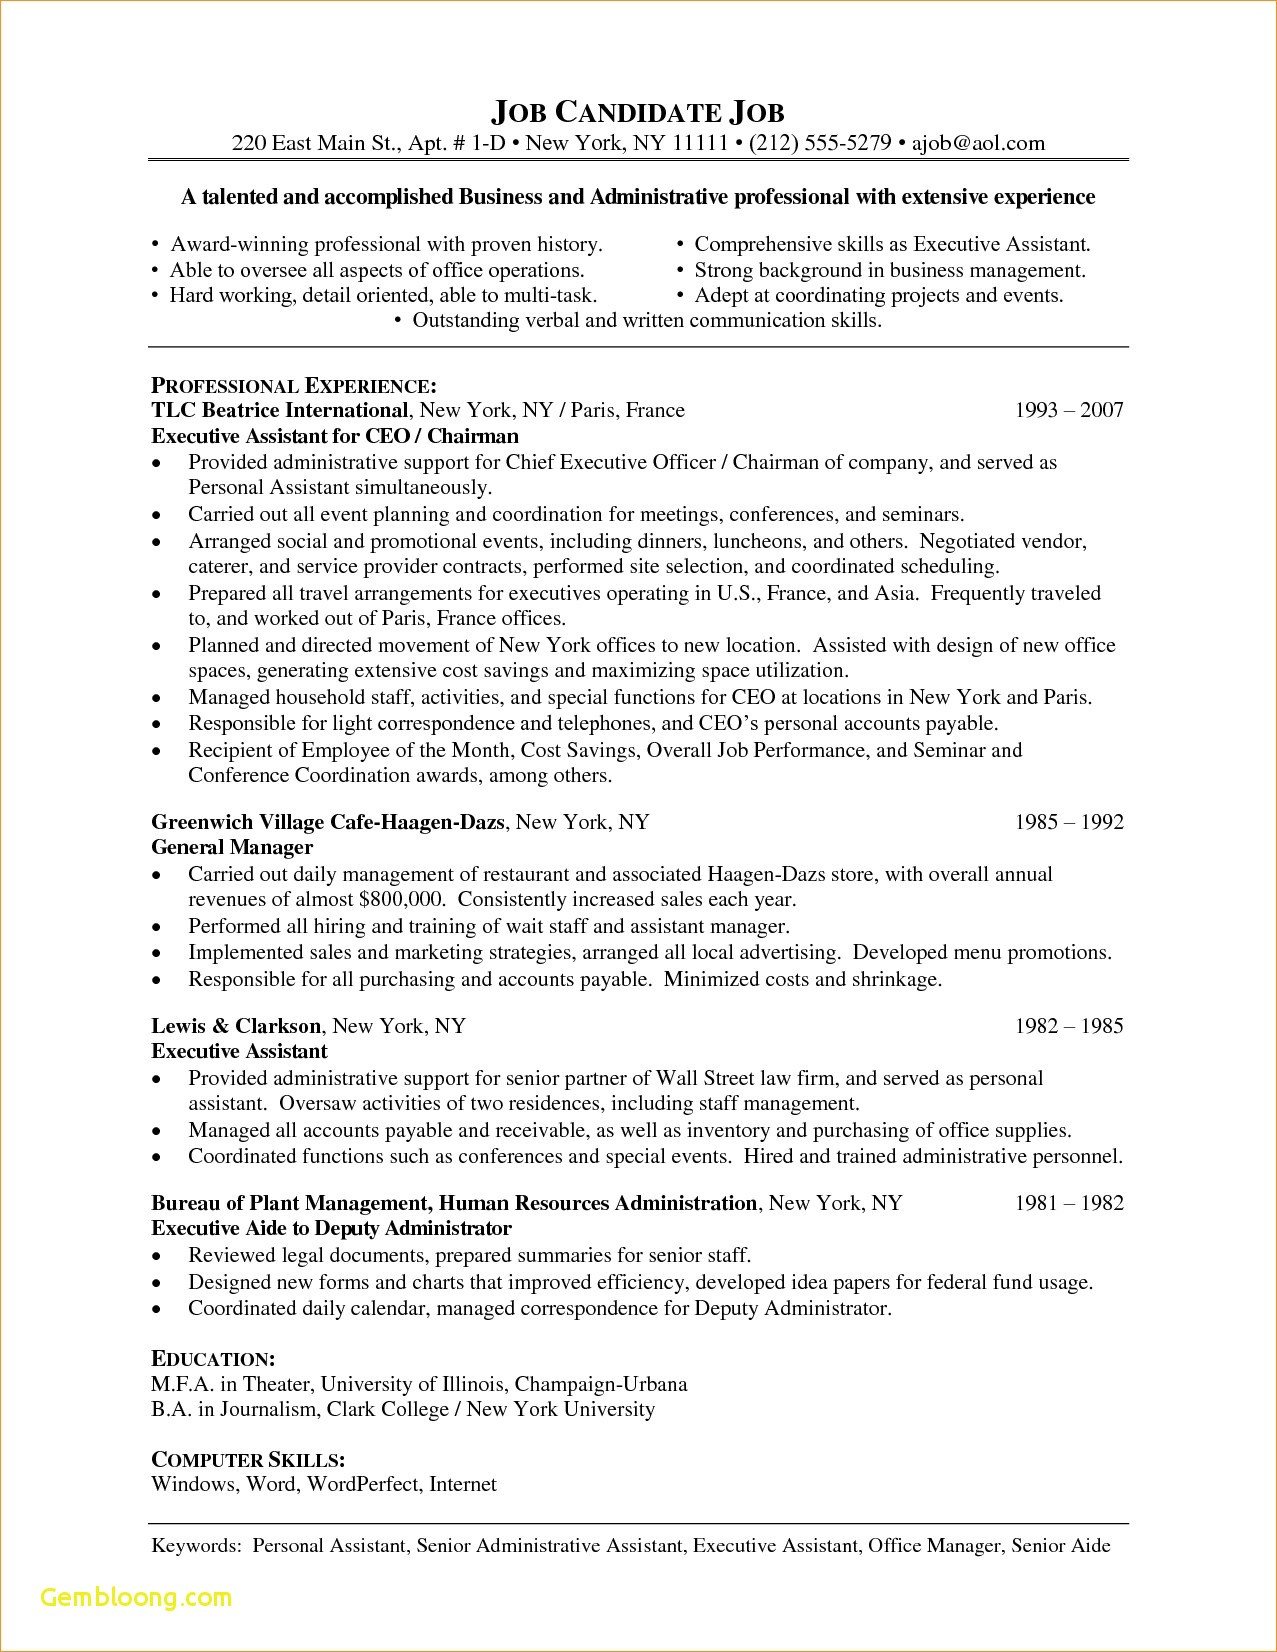 Accounts Receivable Resume Template - Cover Letter and Resume Template Word Download